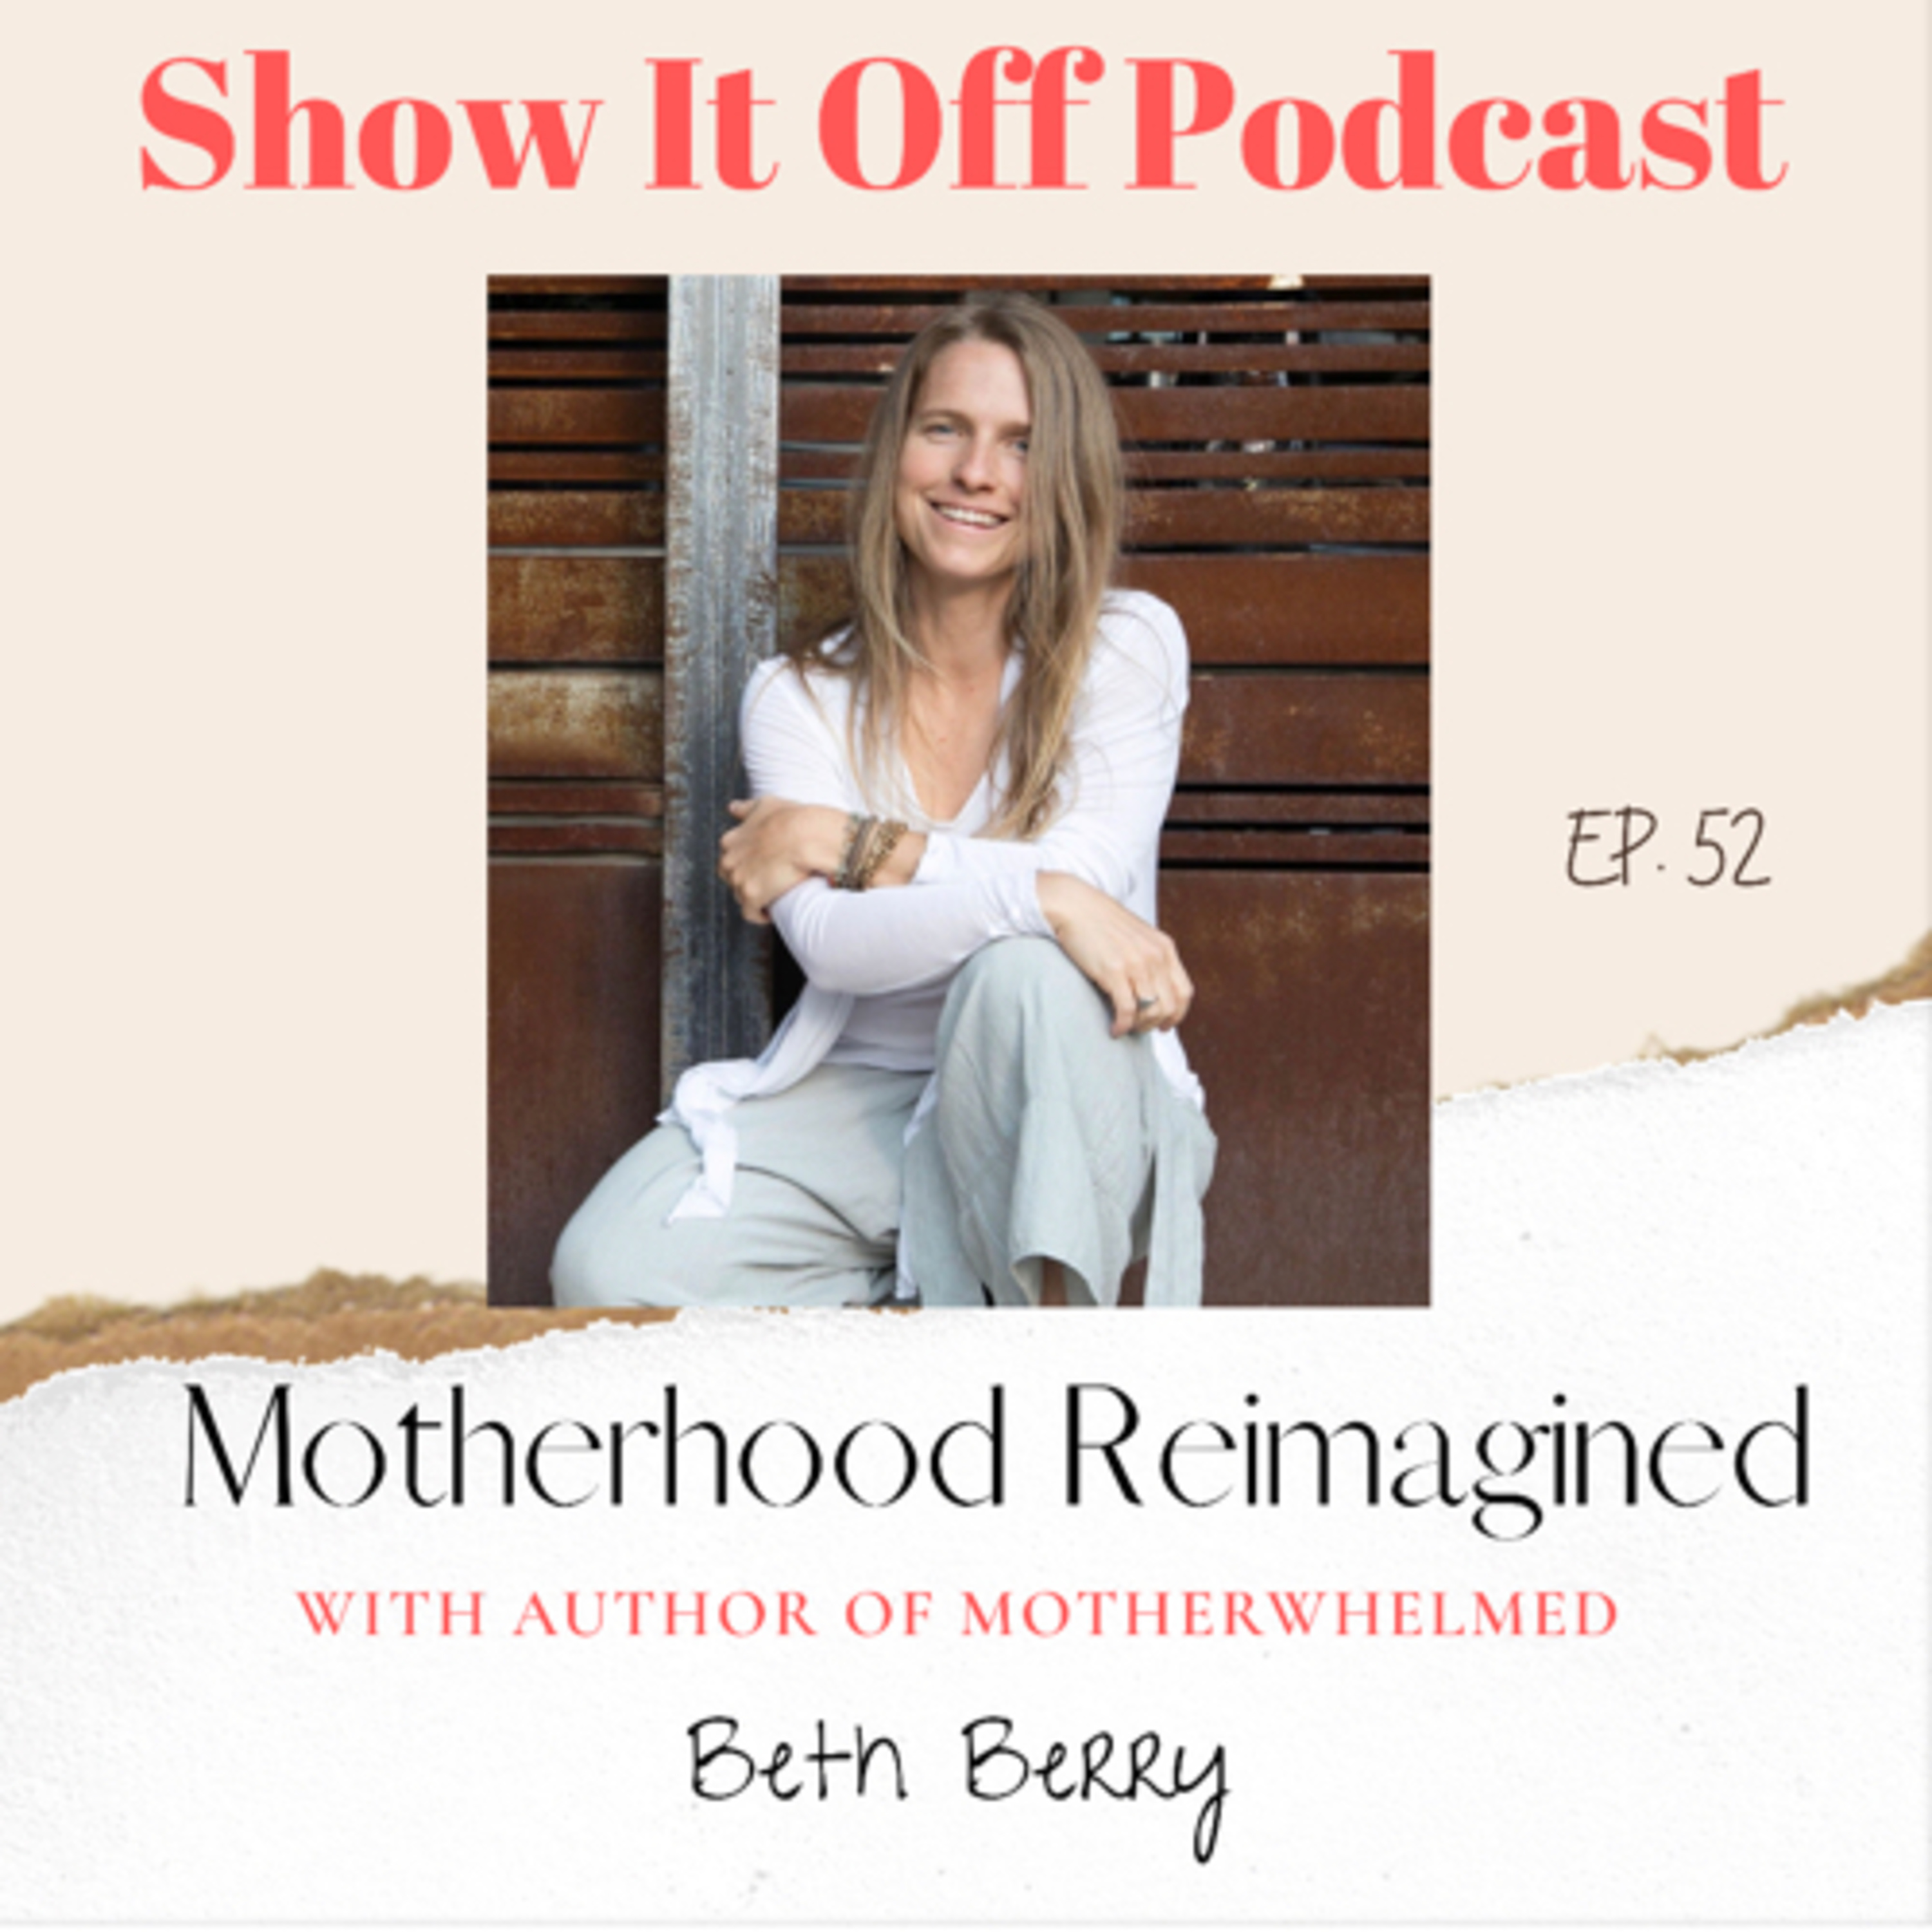 Motherhood Reimagined with Author, Beth Berry